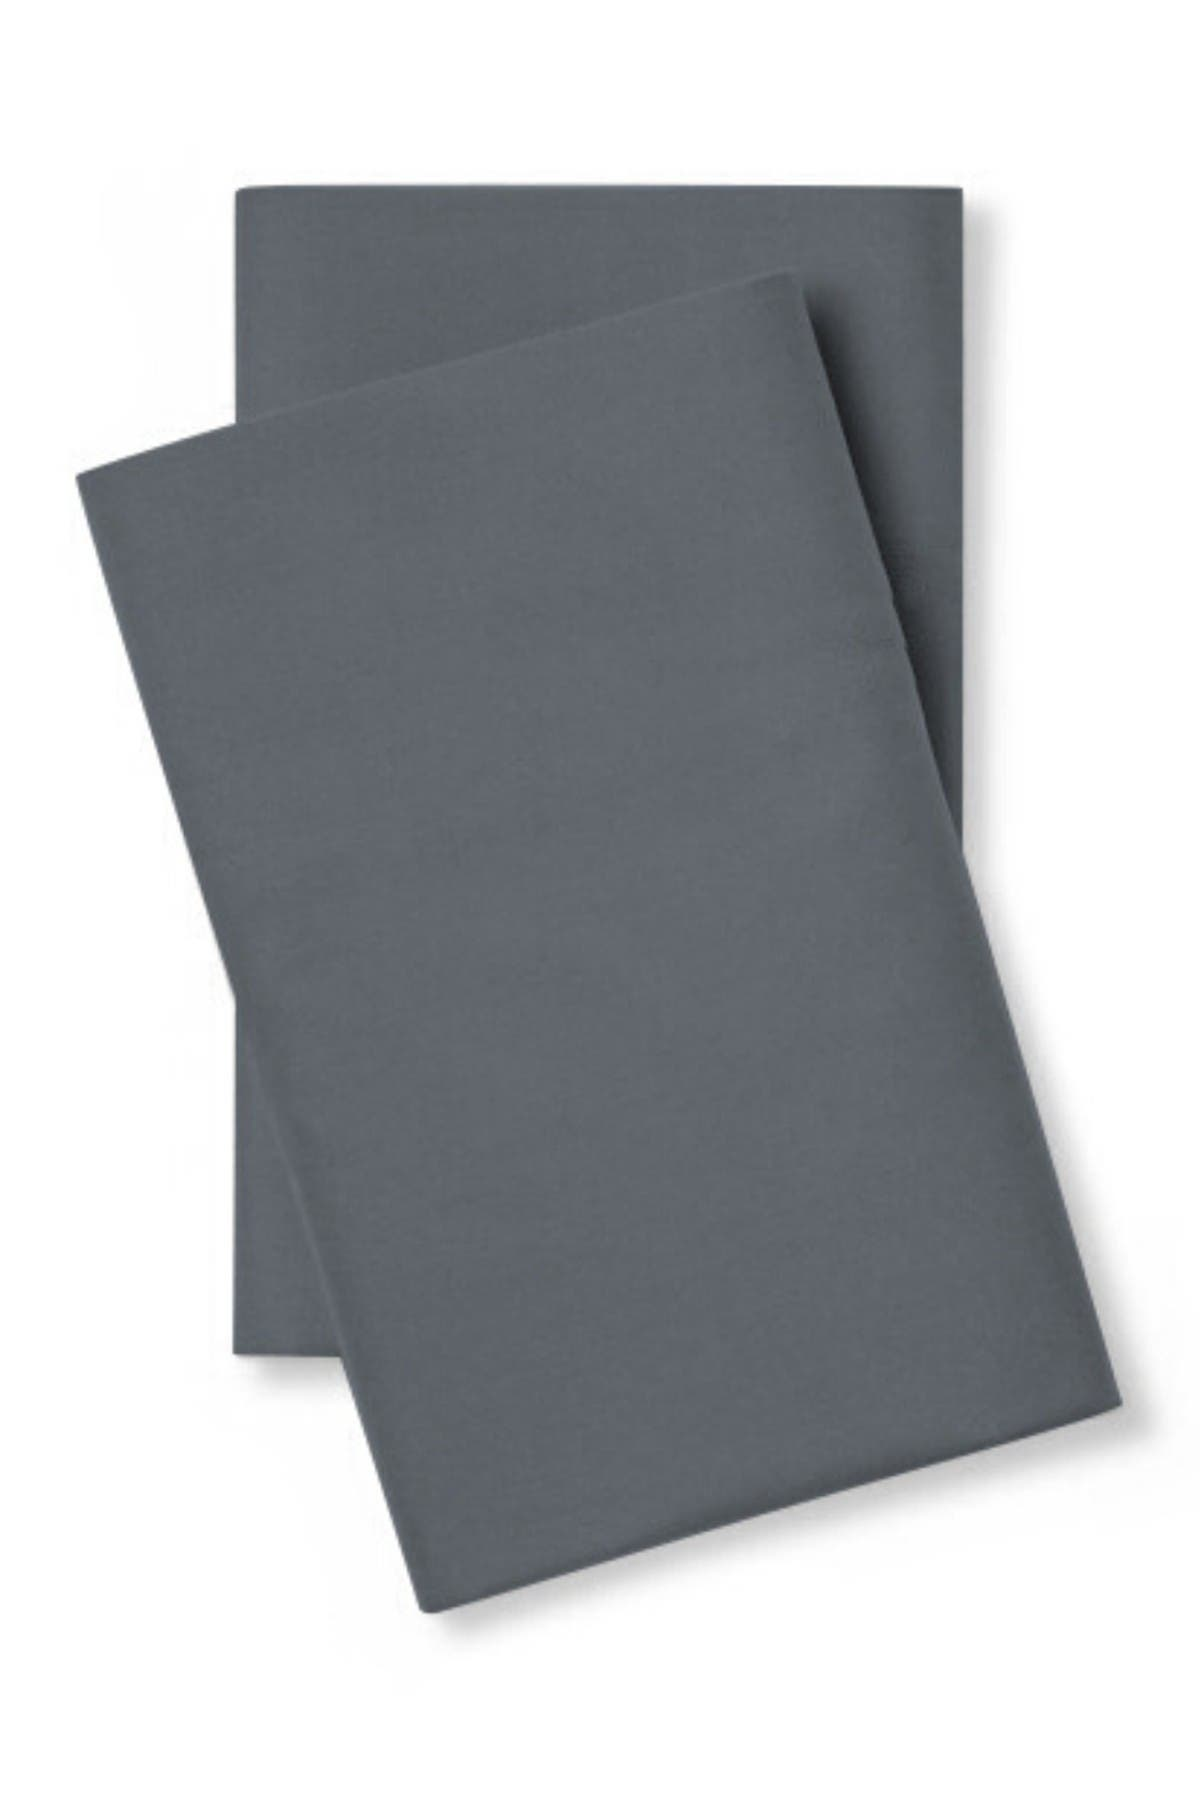 Image of Pillow Guy Classic Cool & Crisp Cotton Percale Pillowcase Pair - Set of 2 - King/Cal King - Charcoal